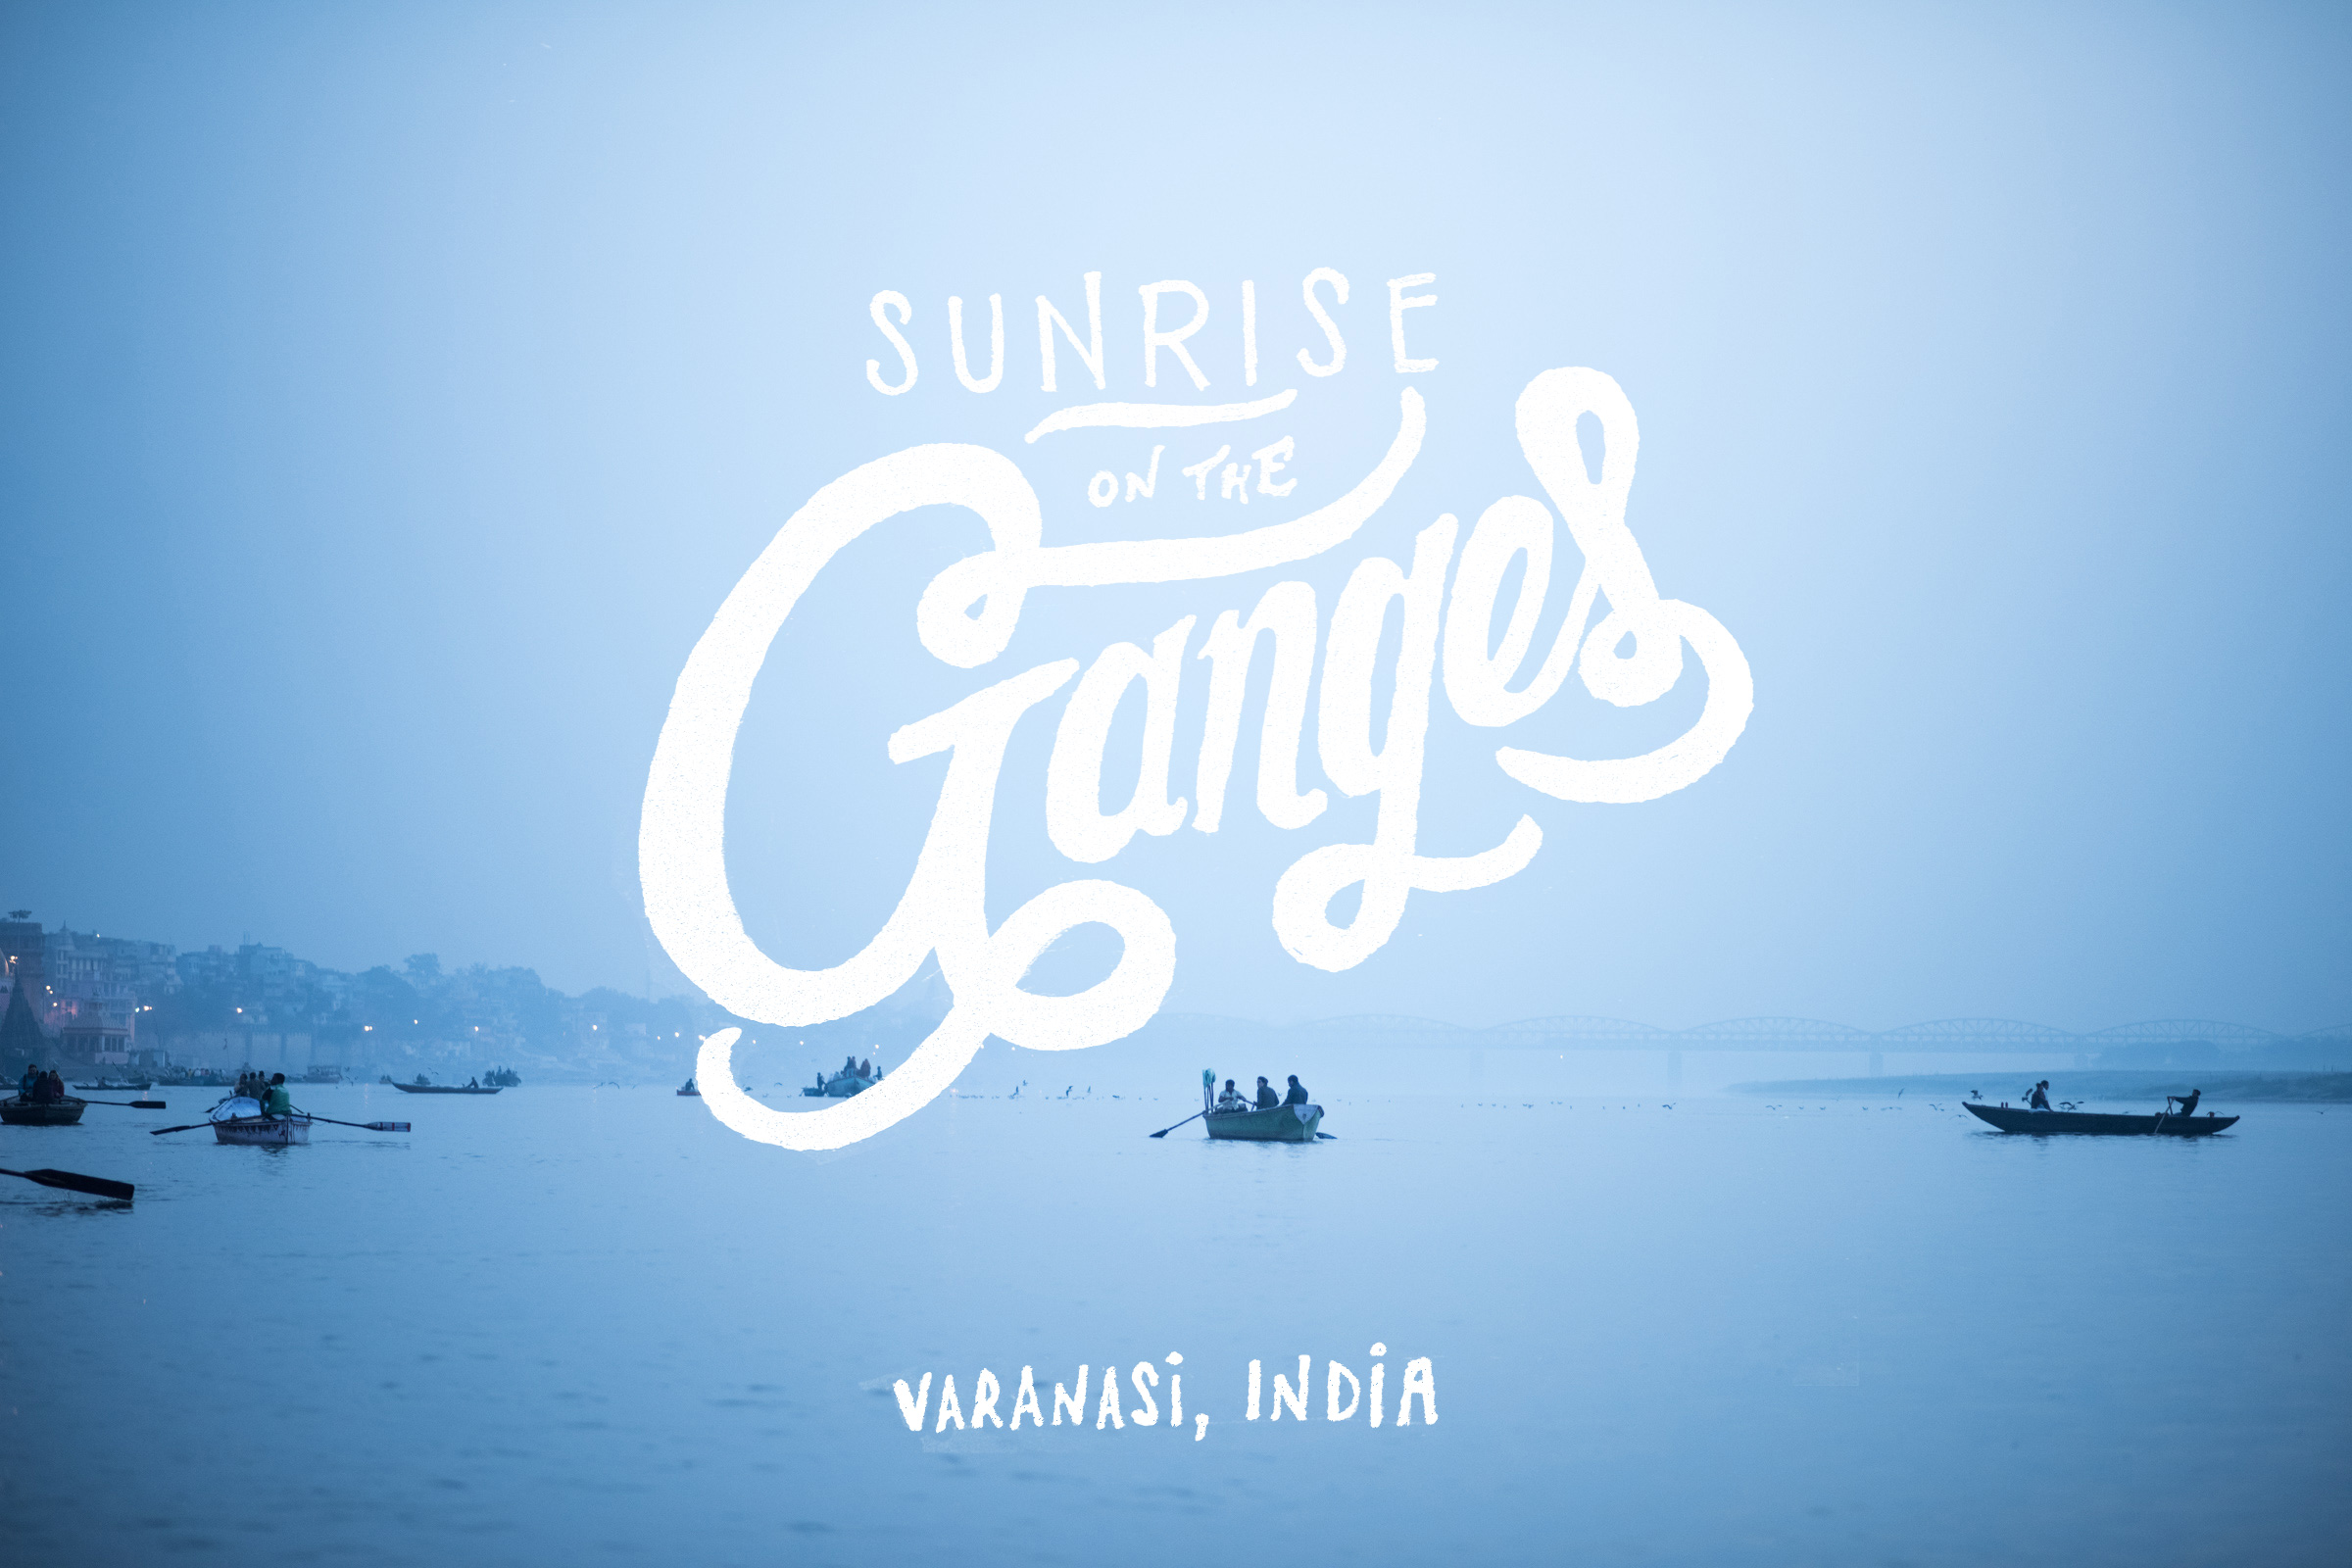 Sunrise on the Ganges - Varanasi, India